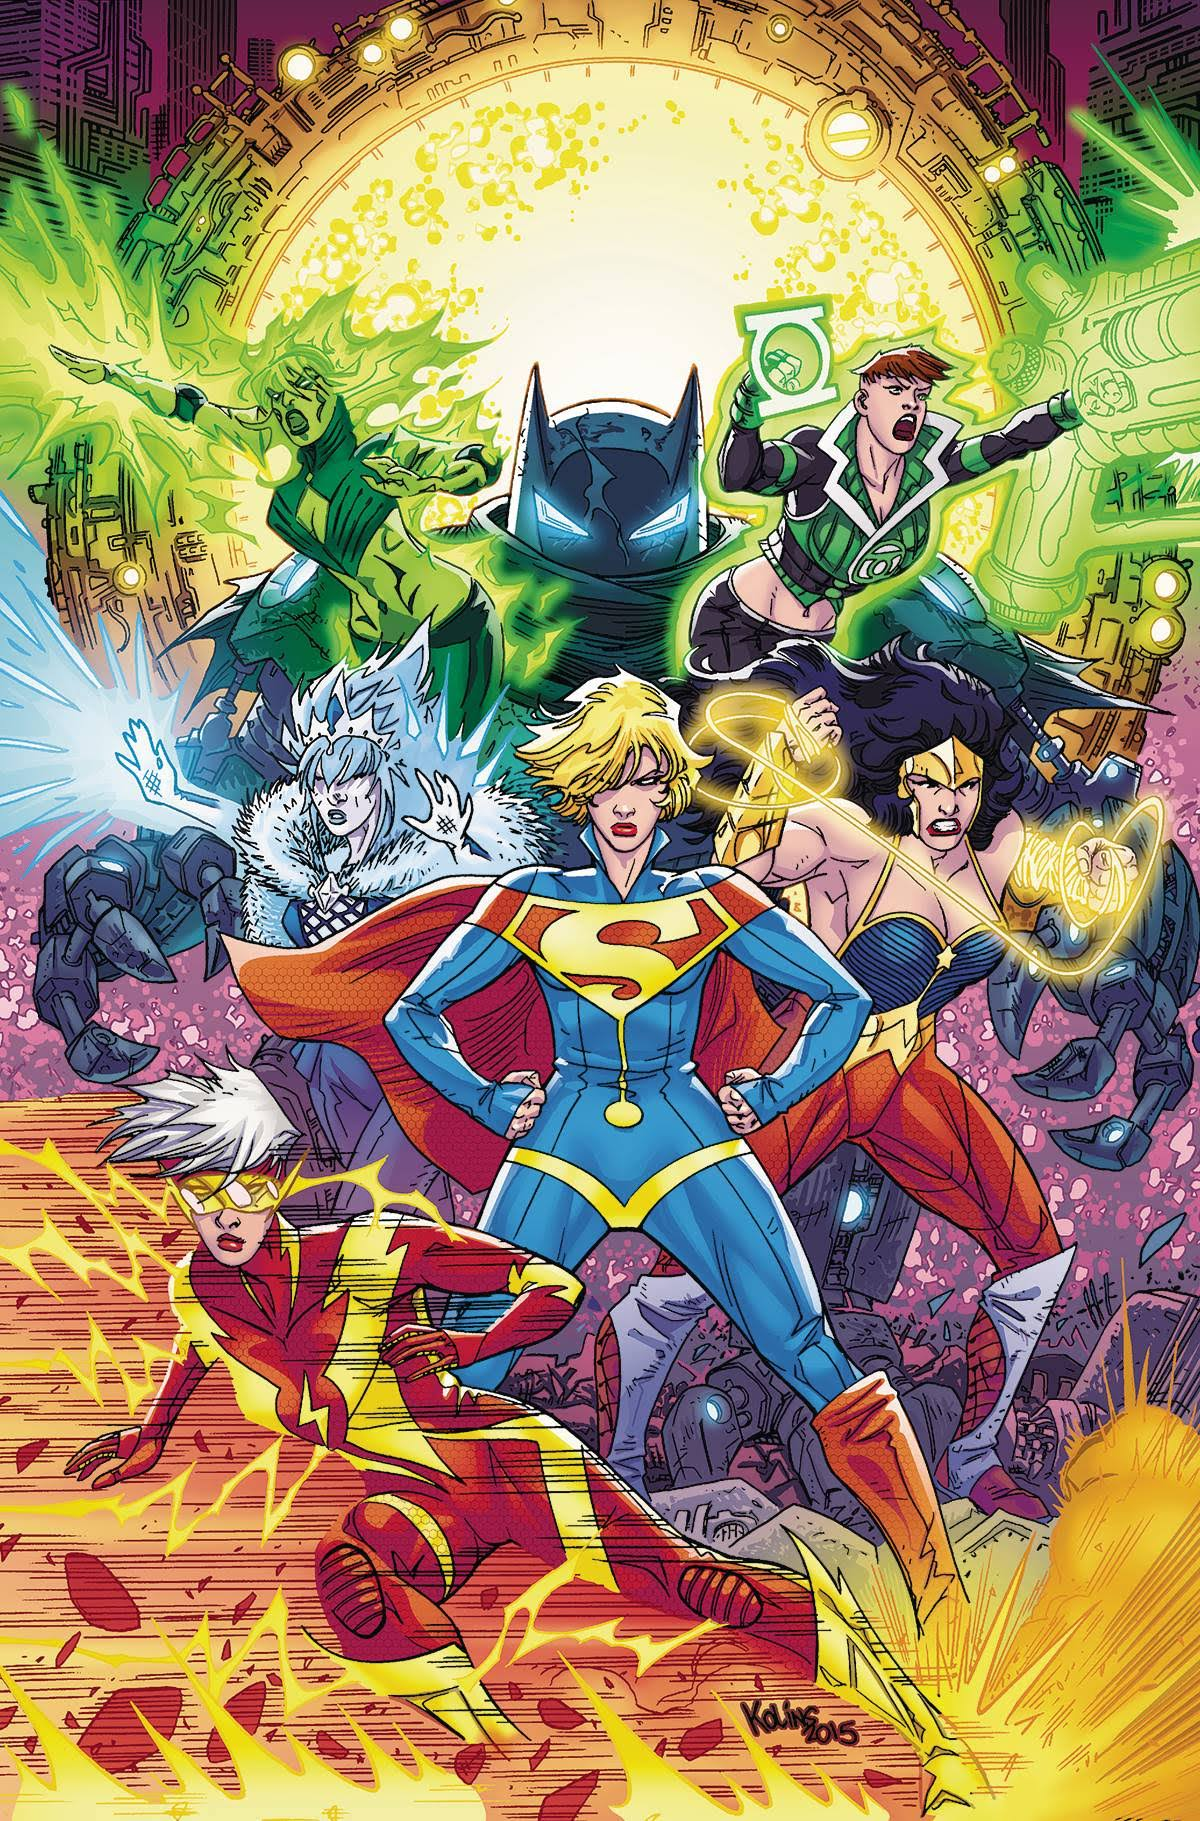 Justice League 3001 Vol. 2: Things Fall Apart - Kieth Giffen